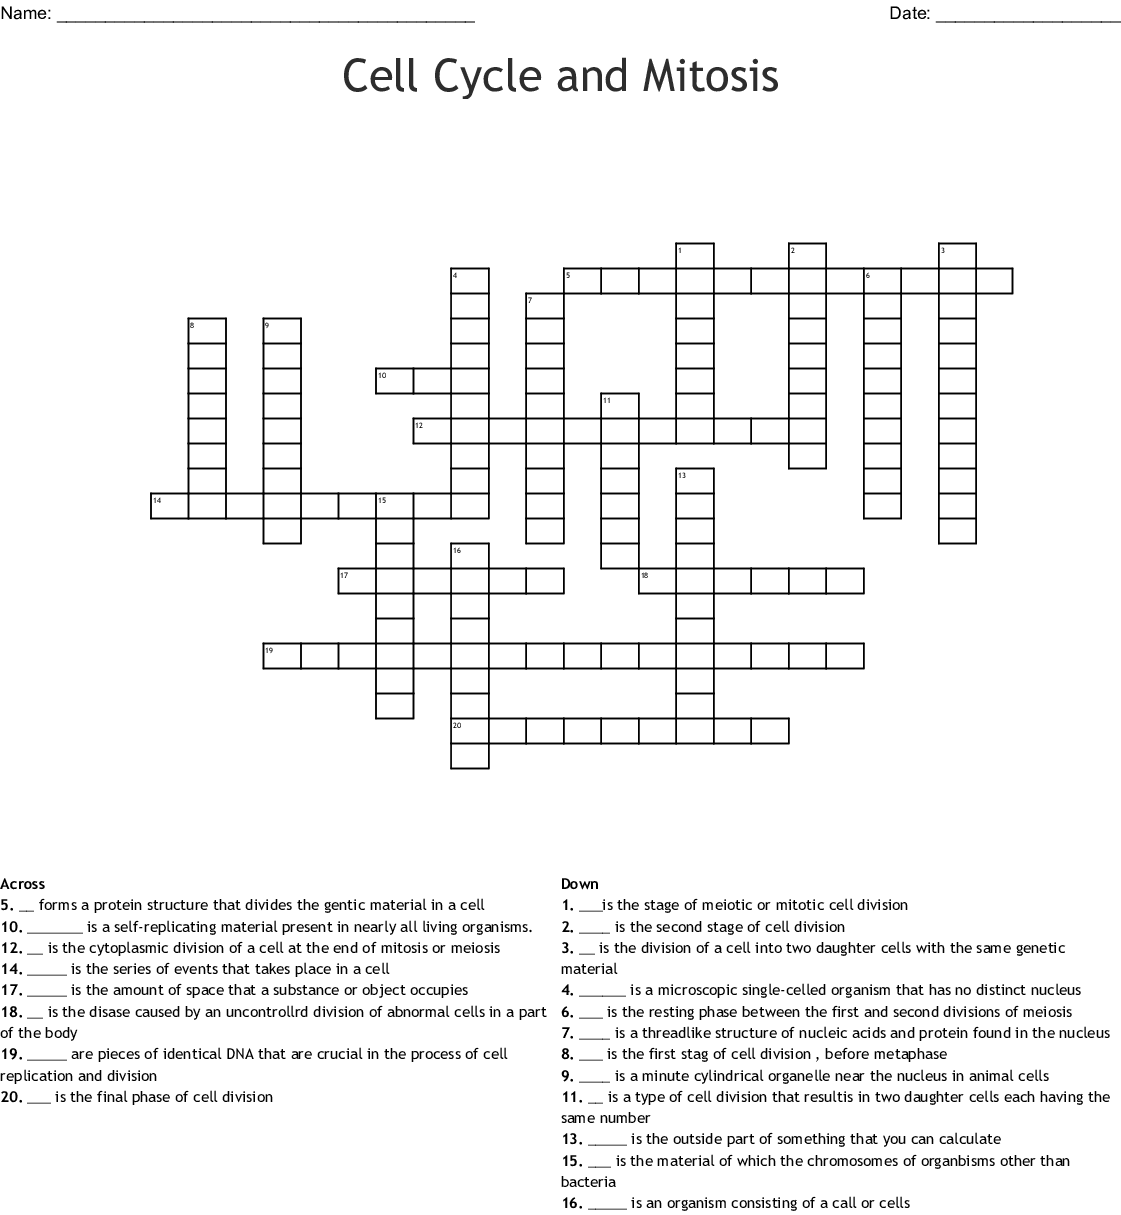 Cell Cycle And Mitosis Crossword